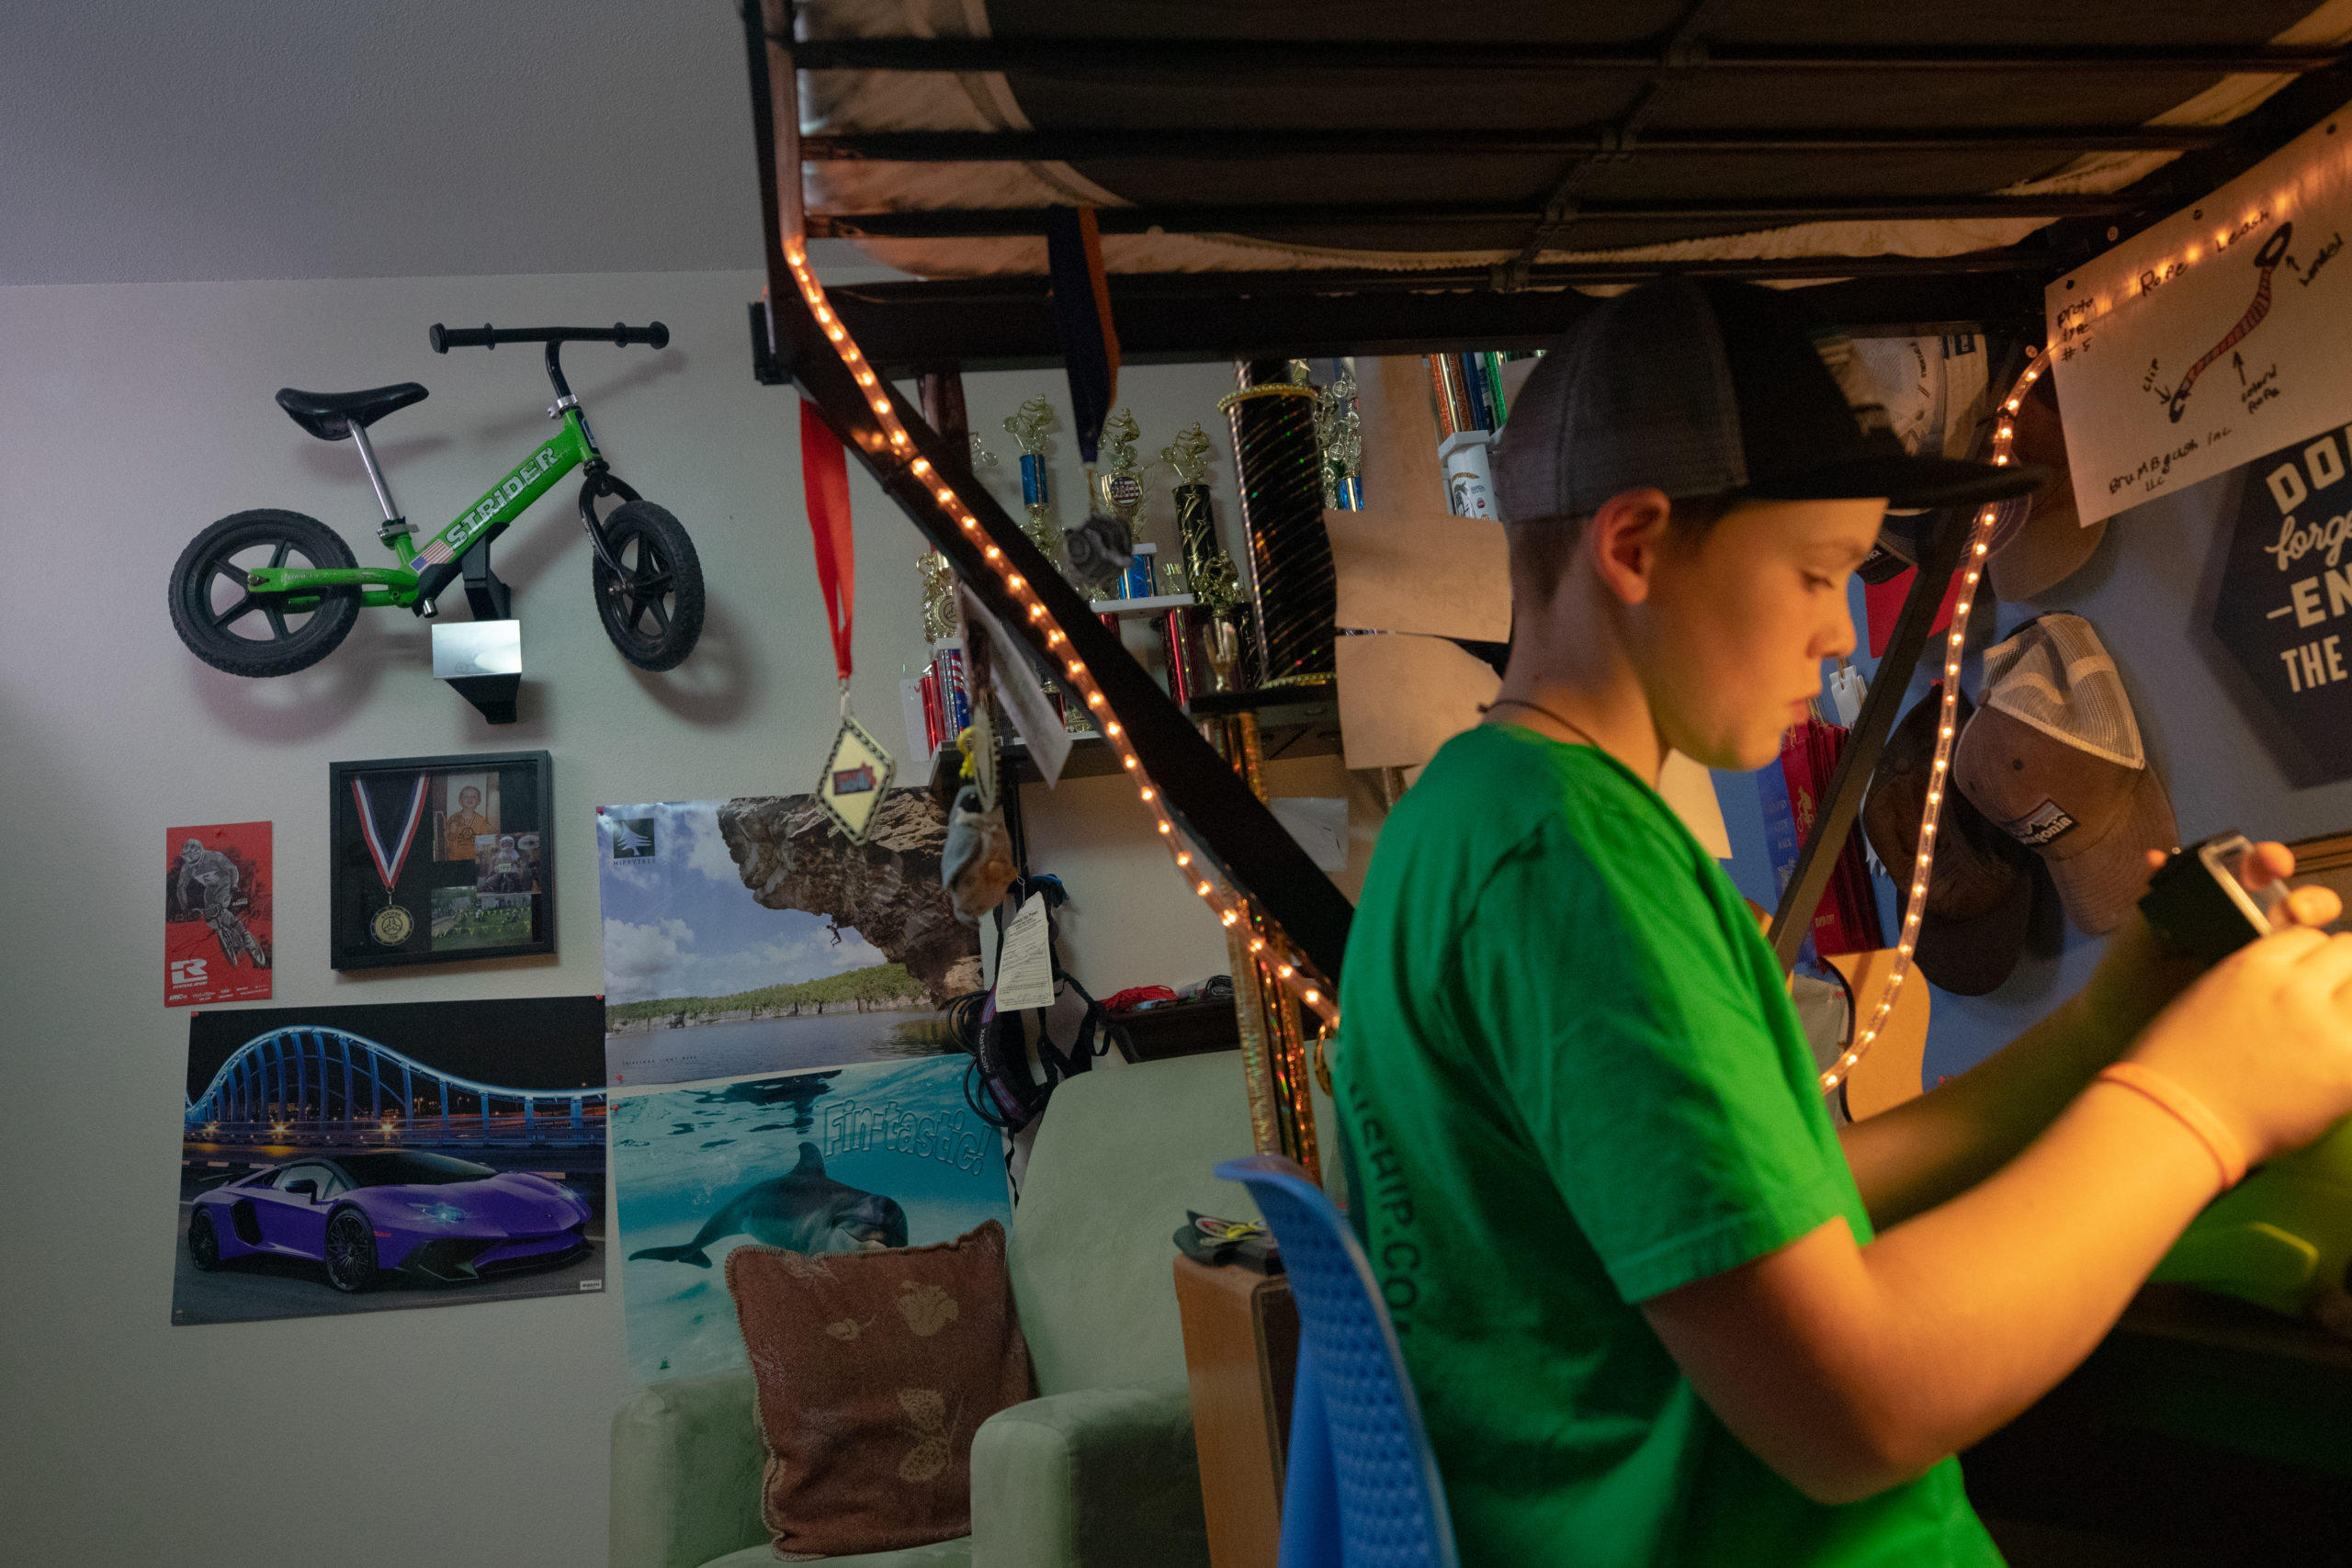 Memory mount hung up on wall in boy's bedroom with old green 12 Classic bike